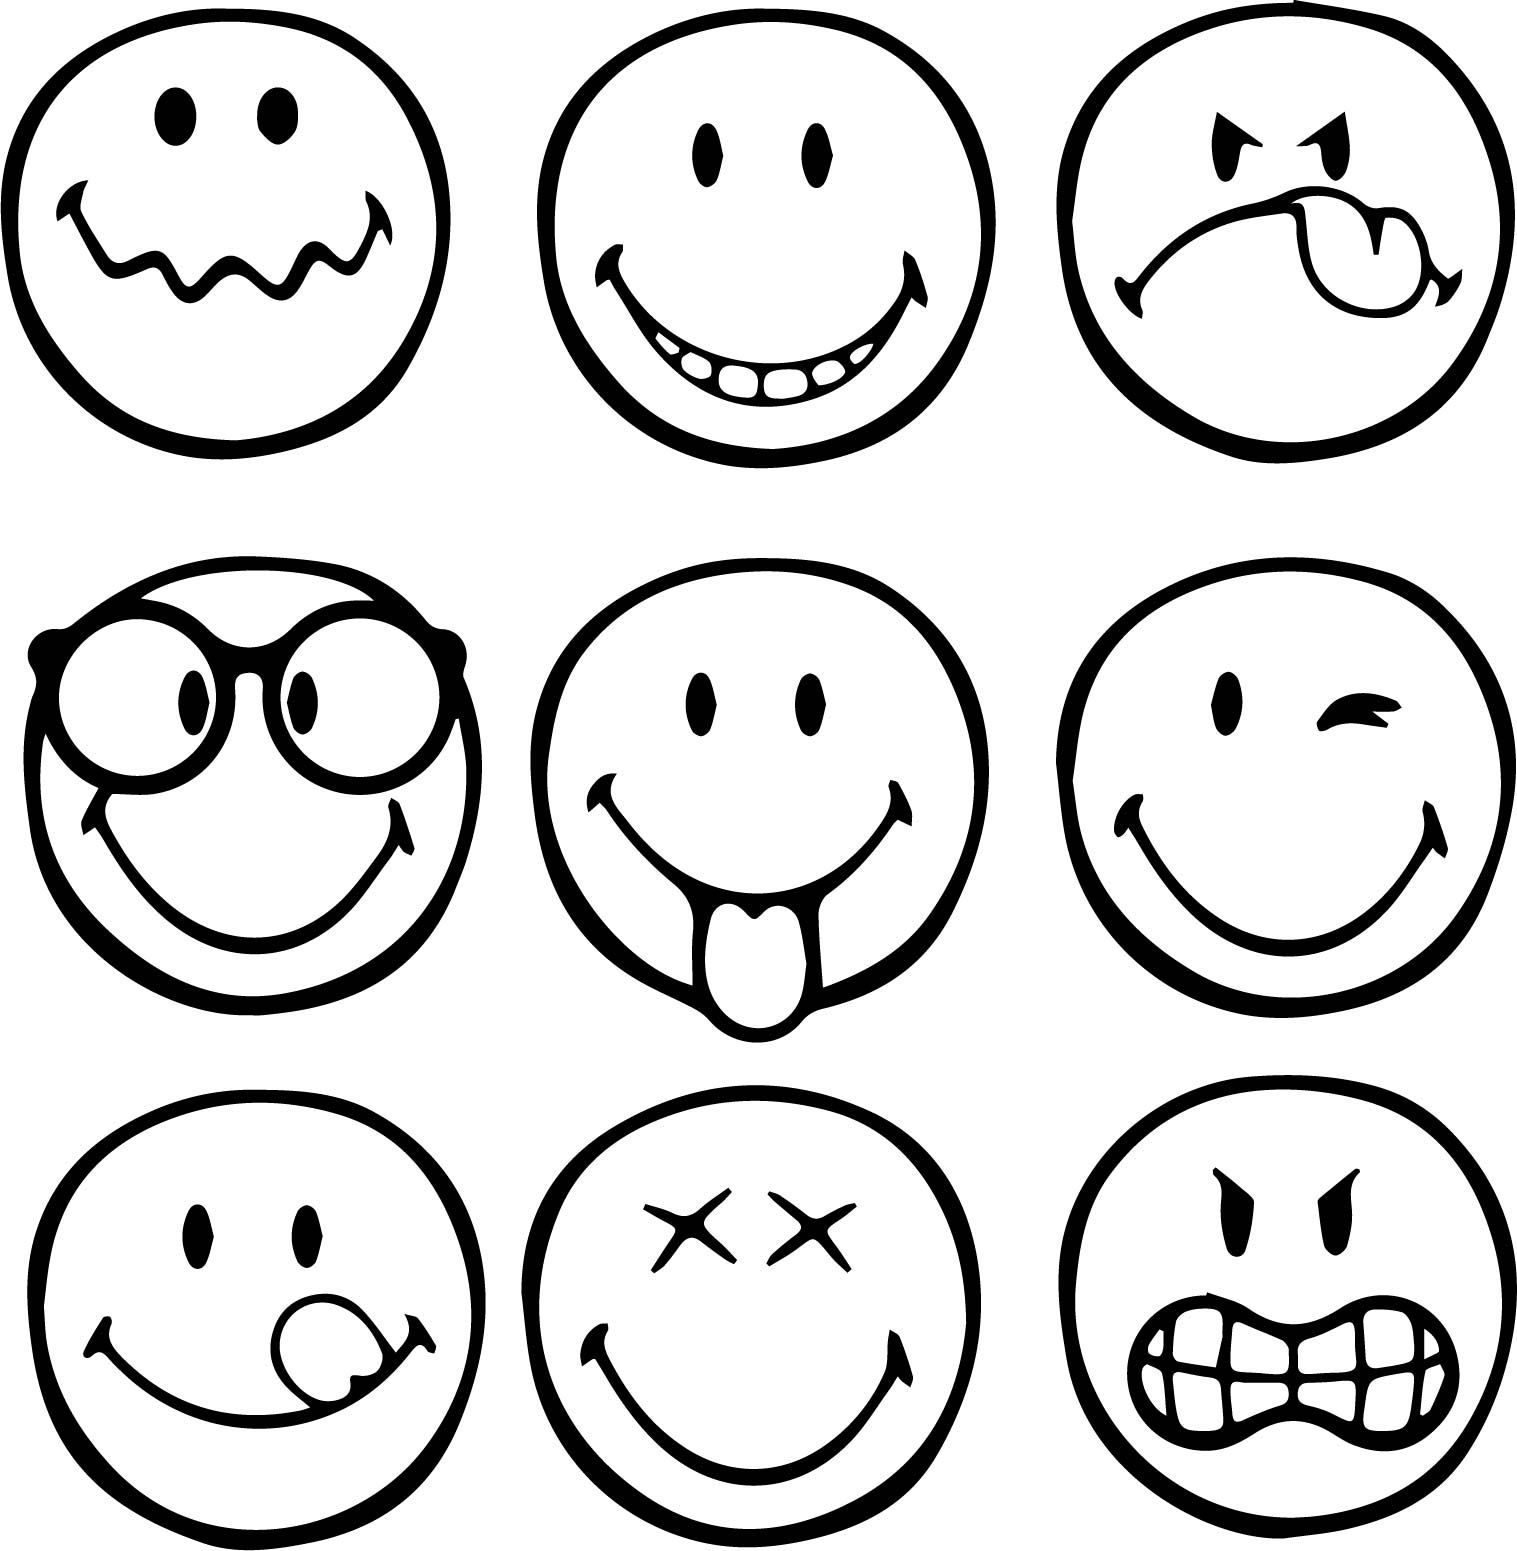 Nice First Graphical Emoticons Smiley Coloring Page Mini Drawings Art Drawings For Kids Coloring Pages